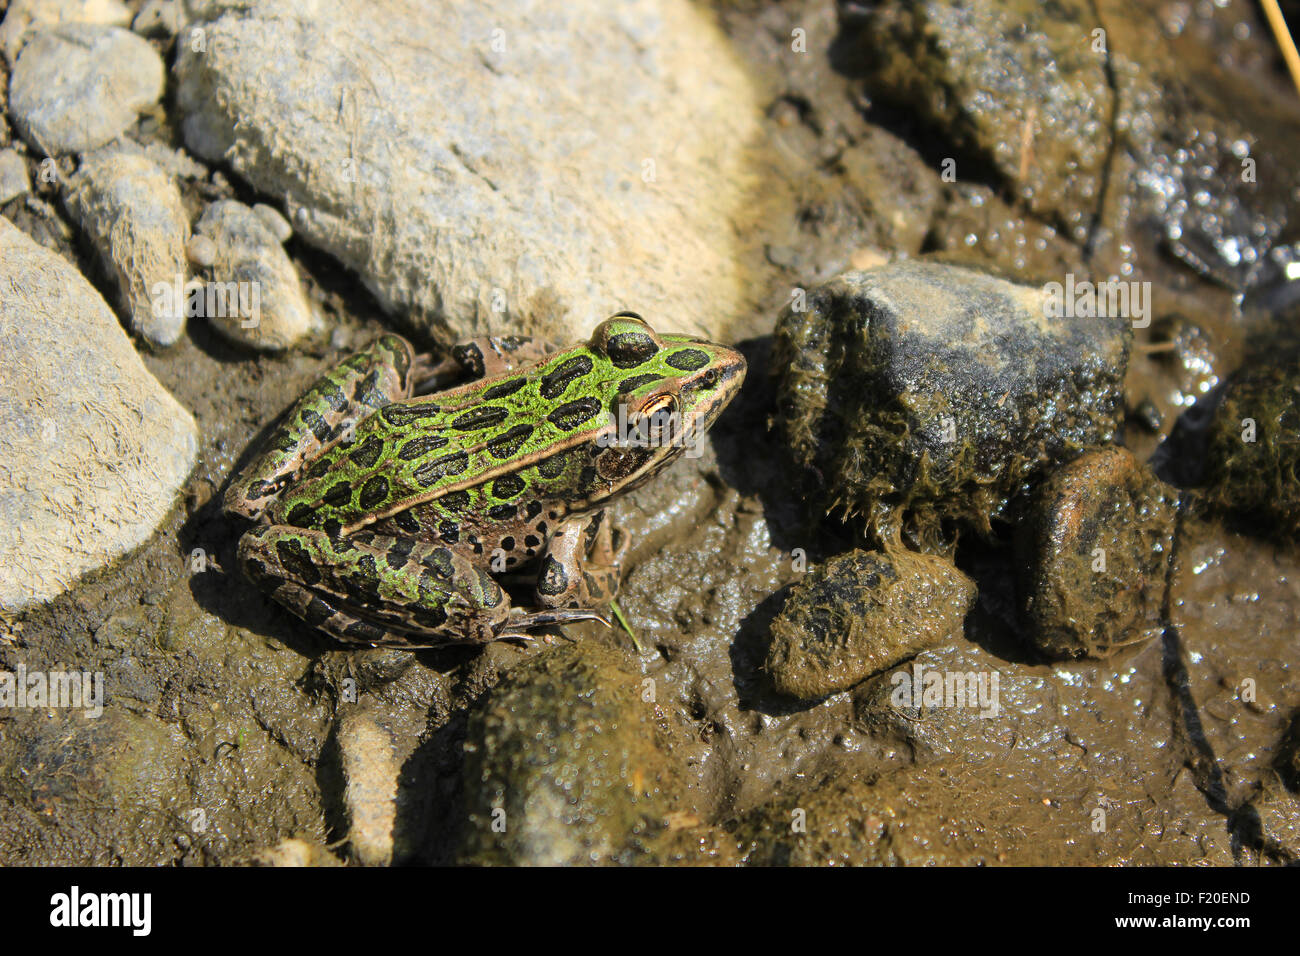 A frog in a marsh in Morden, Manitoba, Canada Stock Photo